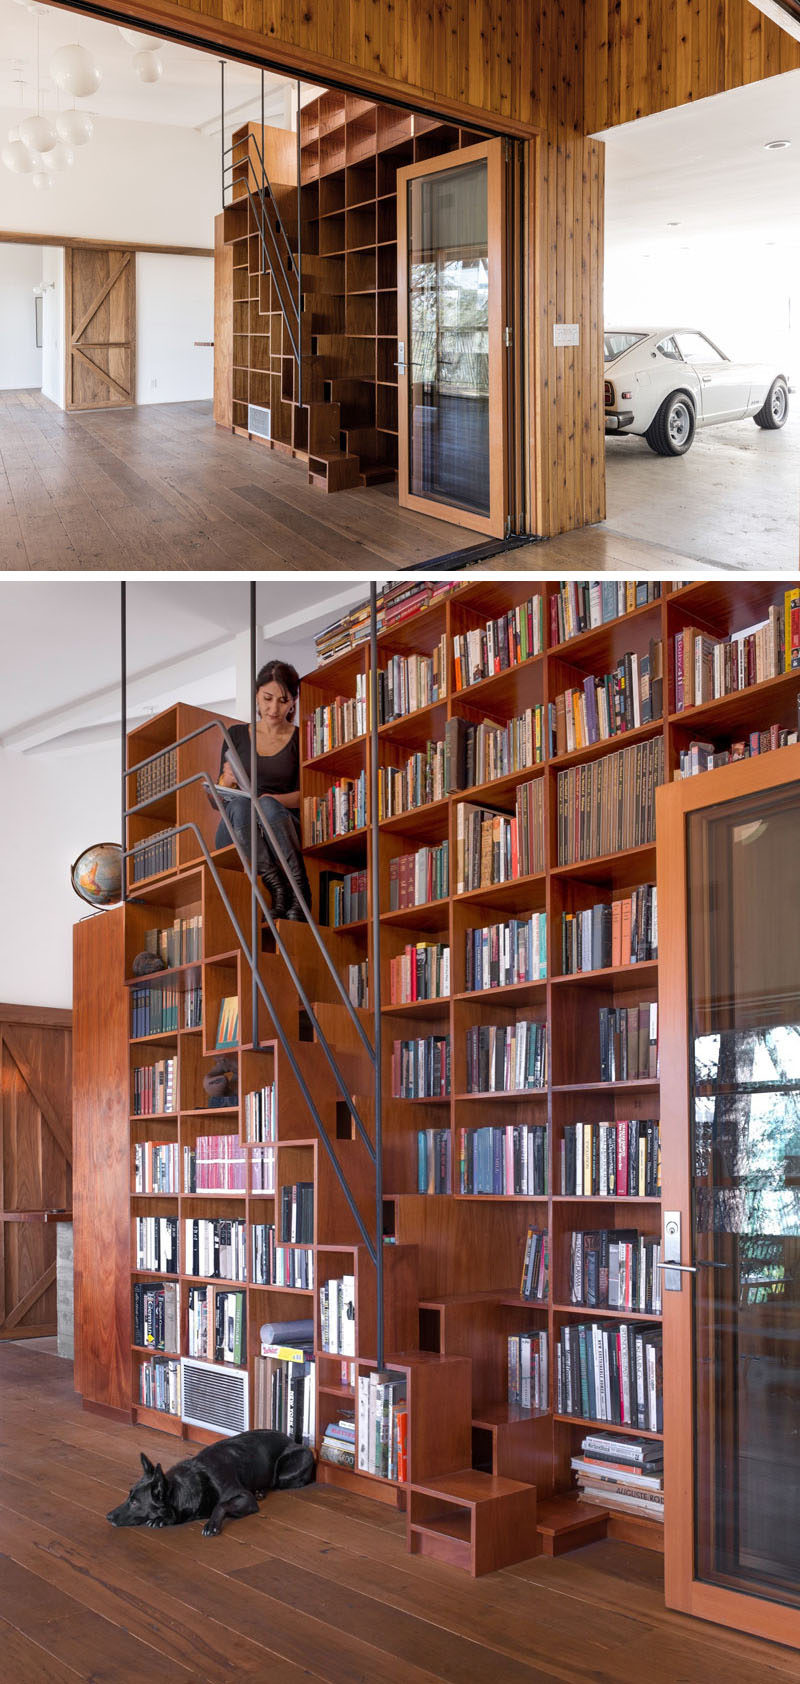 This contemporary home has a custom floor-to-ceiling bookshelf that has built-in stairs and a space to sit at the top.